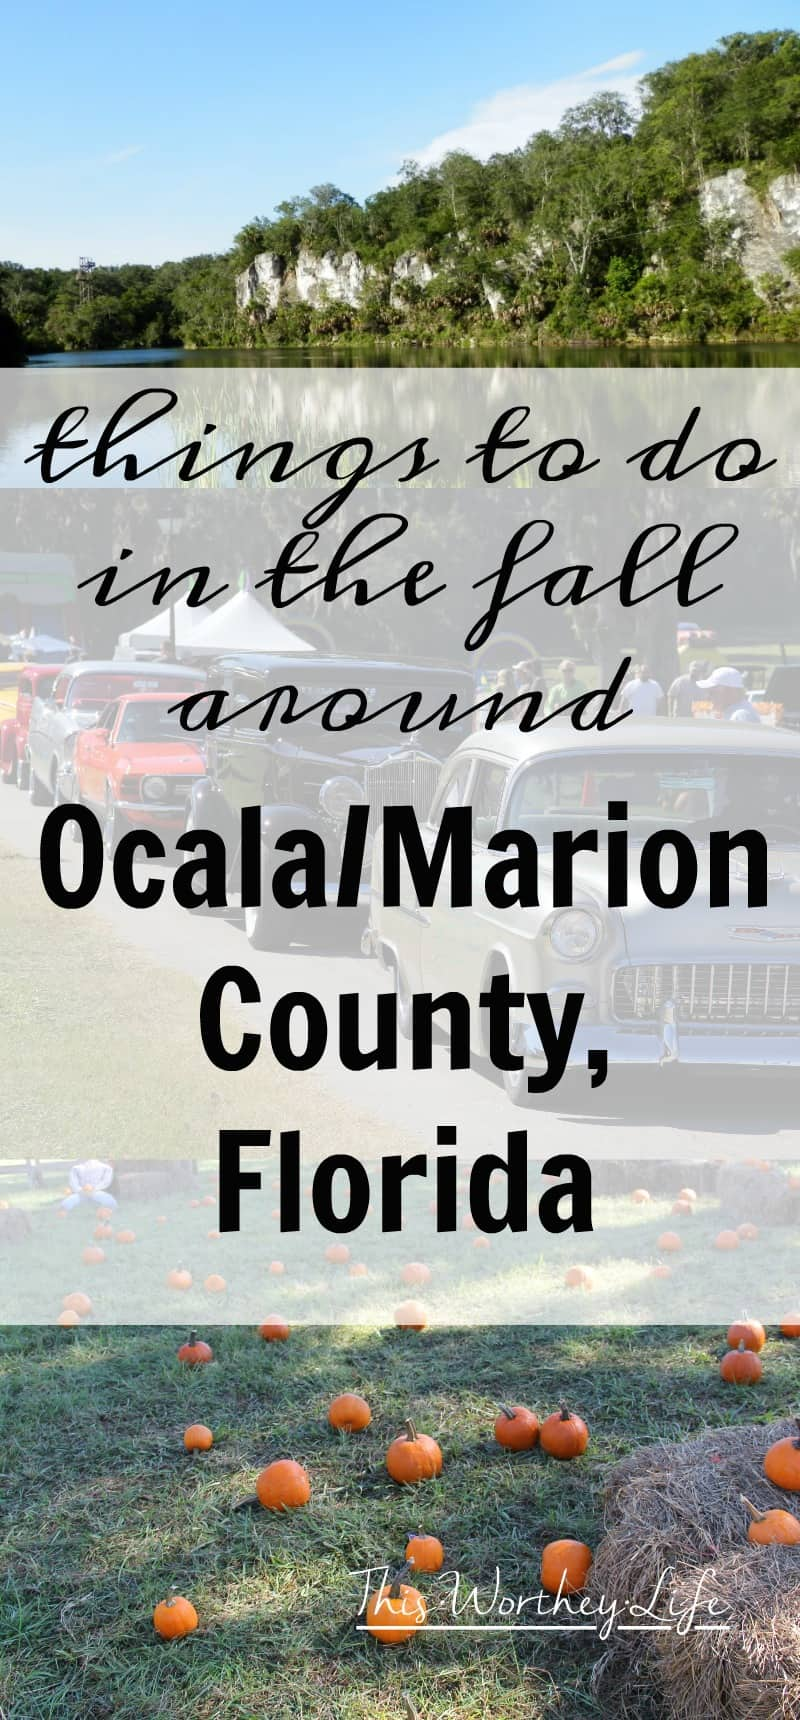 Find a lot of fun and unique things to do in Ocala/Marion County, Florida- Fall Activities In Ocala/Marion County, Florida